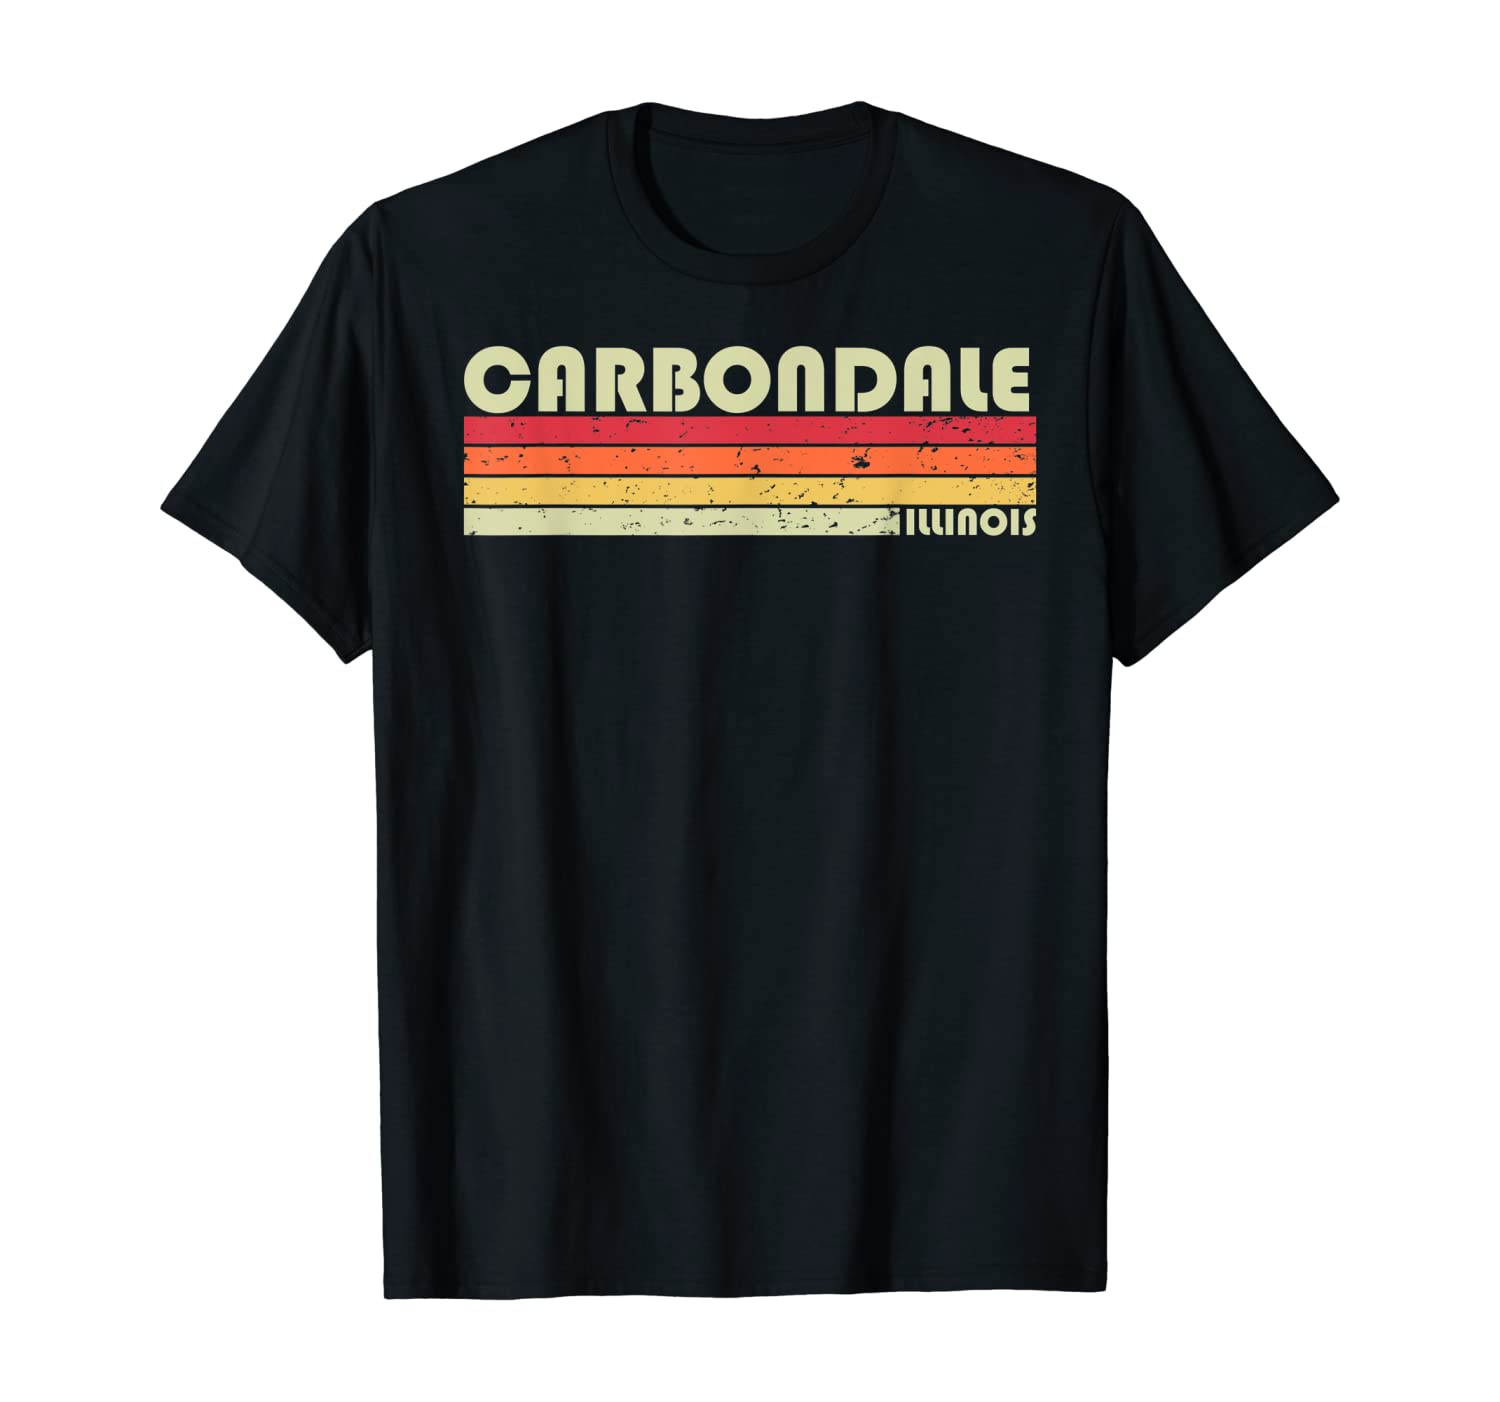 CARBONDALE IL ILLINOIS Funny City Home Roots Gift Retro 80s T-Shirt